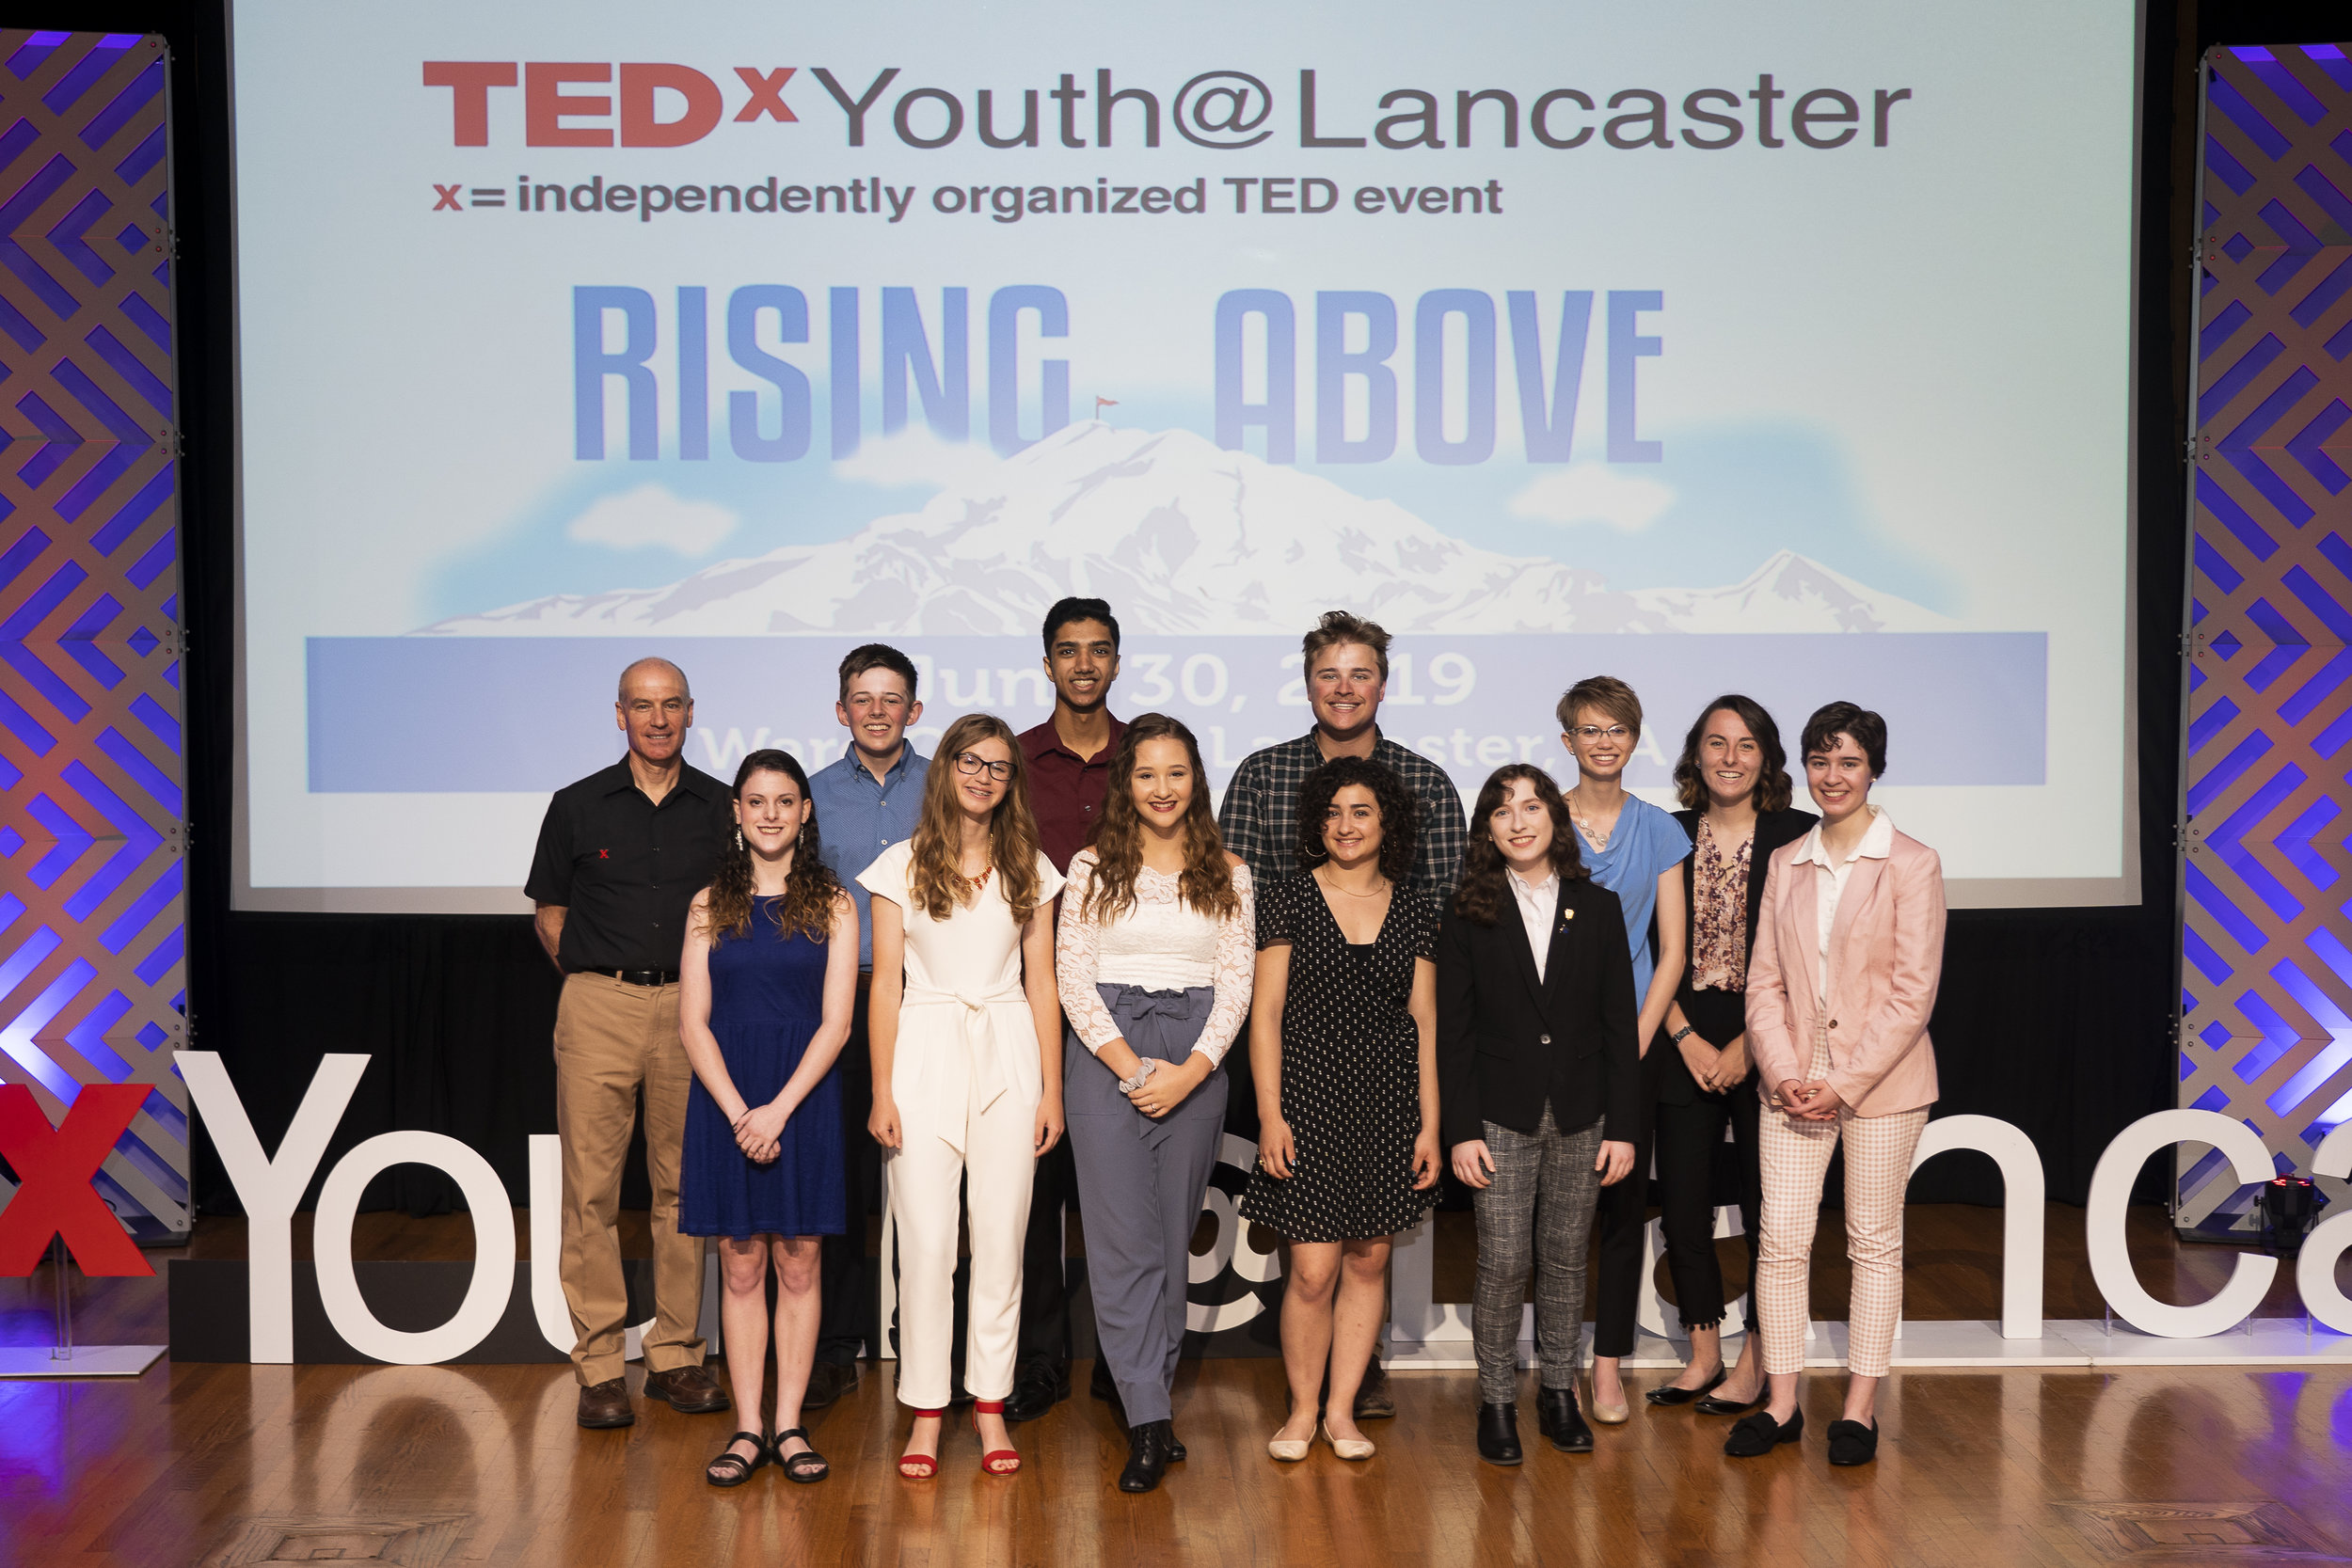 speakers-emcee-and-tedxlancaster-executive-director_48522632891_o.jpg